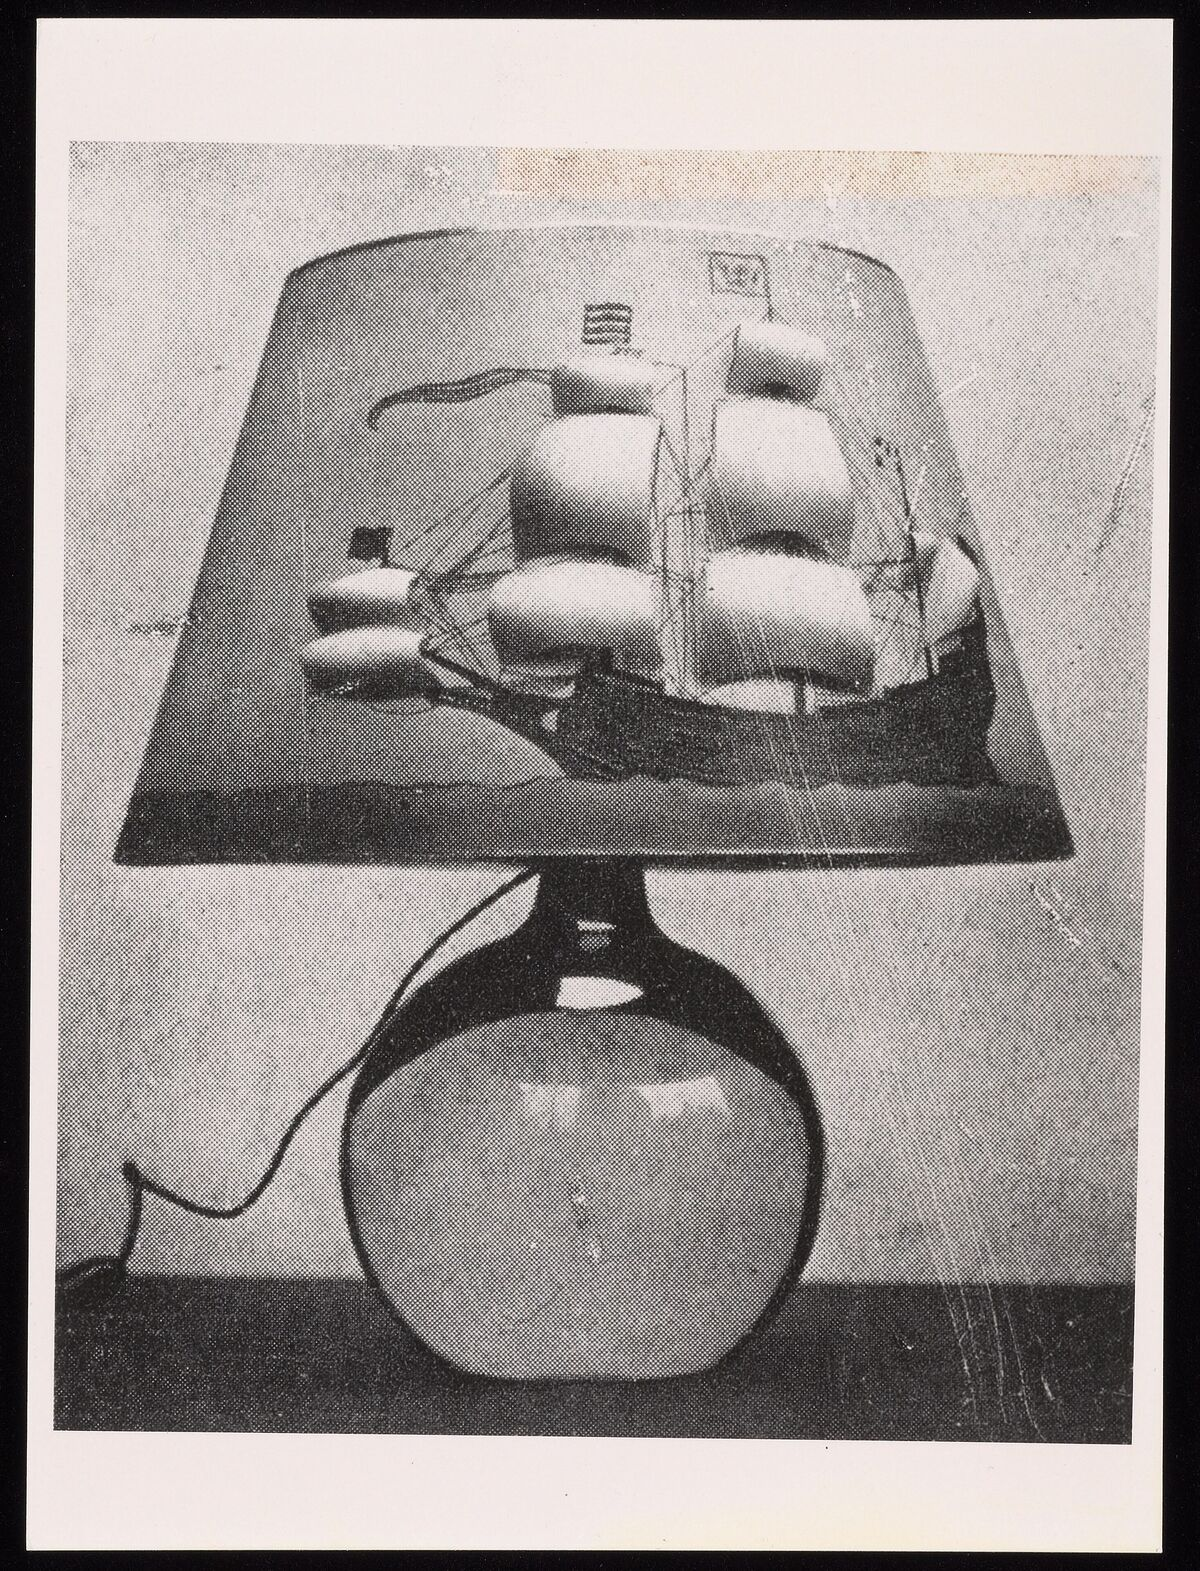 Mina Loy, Lamps photographs by Charmet, Jean-Loup Photos Presse Paris, ca.1920.  Courtesy of the Beinecke Rare Book & Manuscript Library at Yale University.